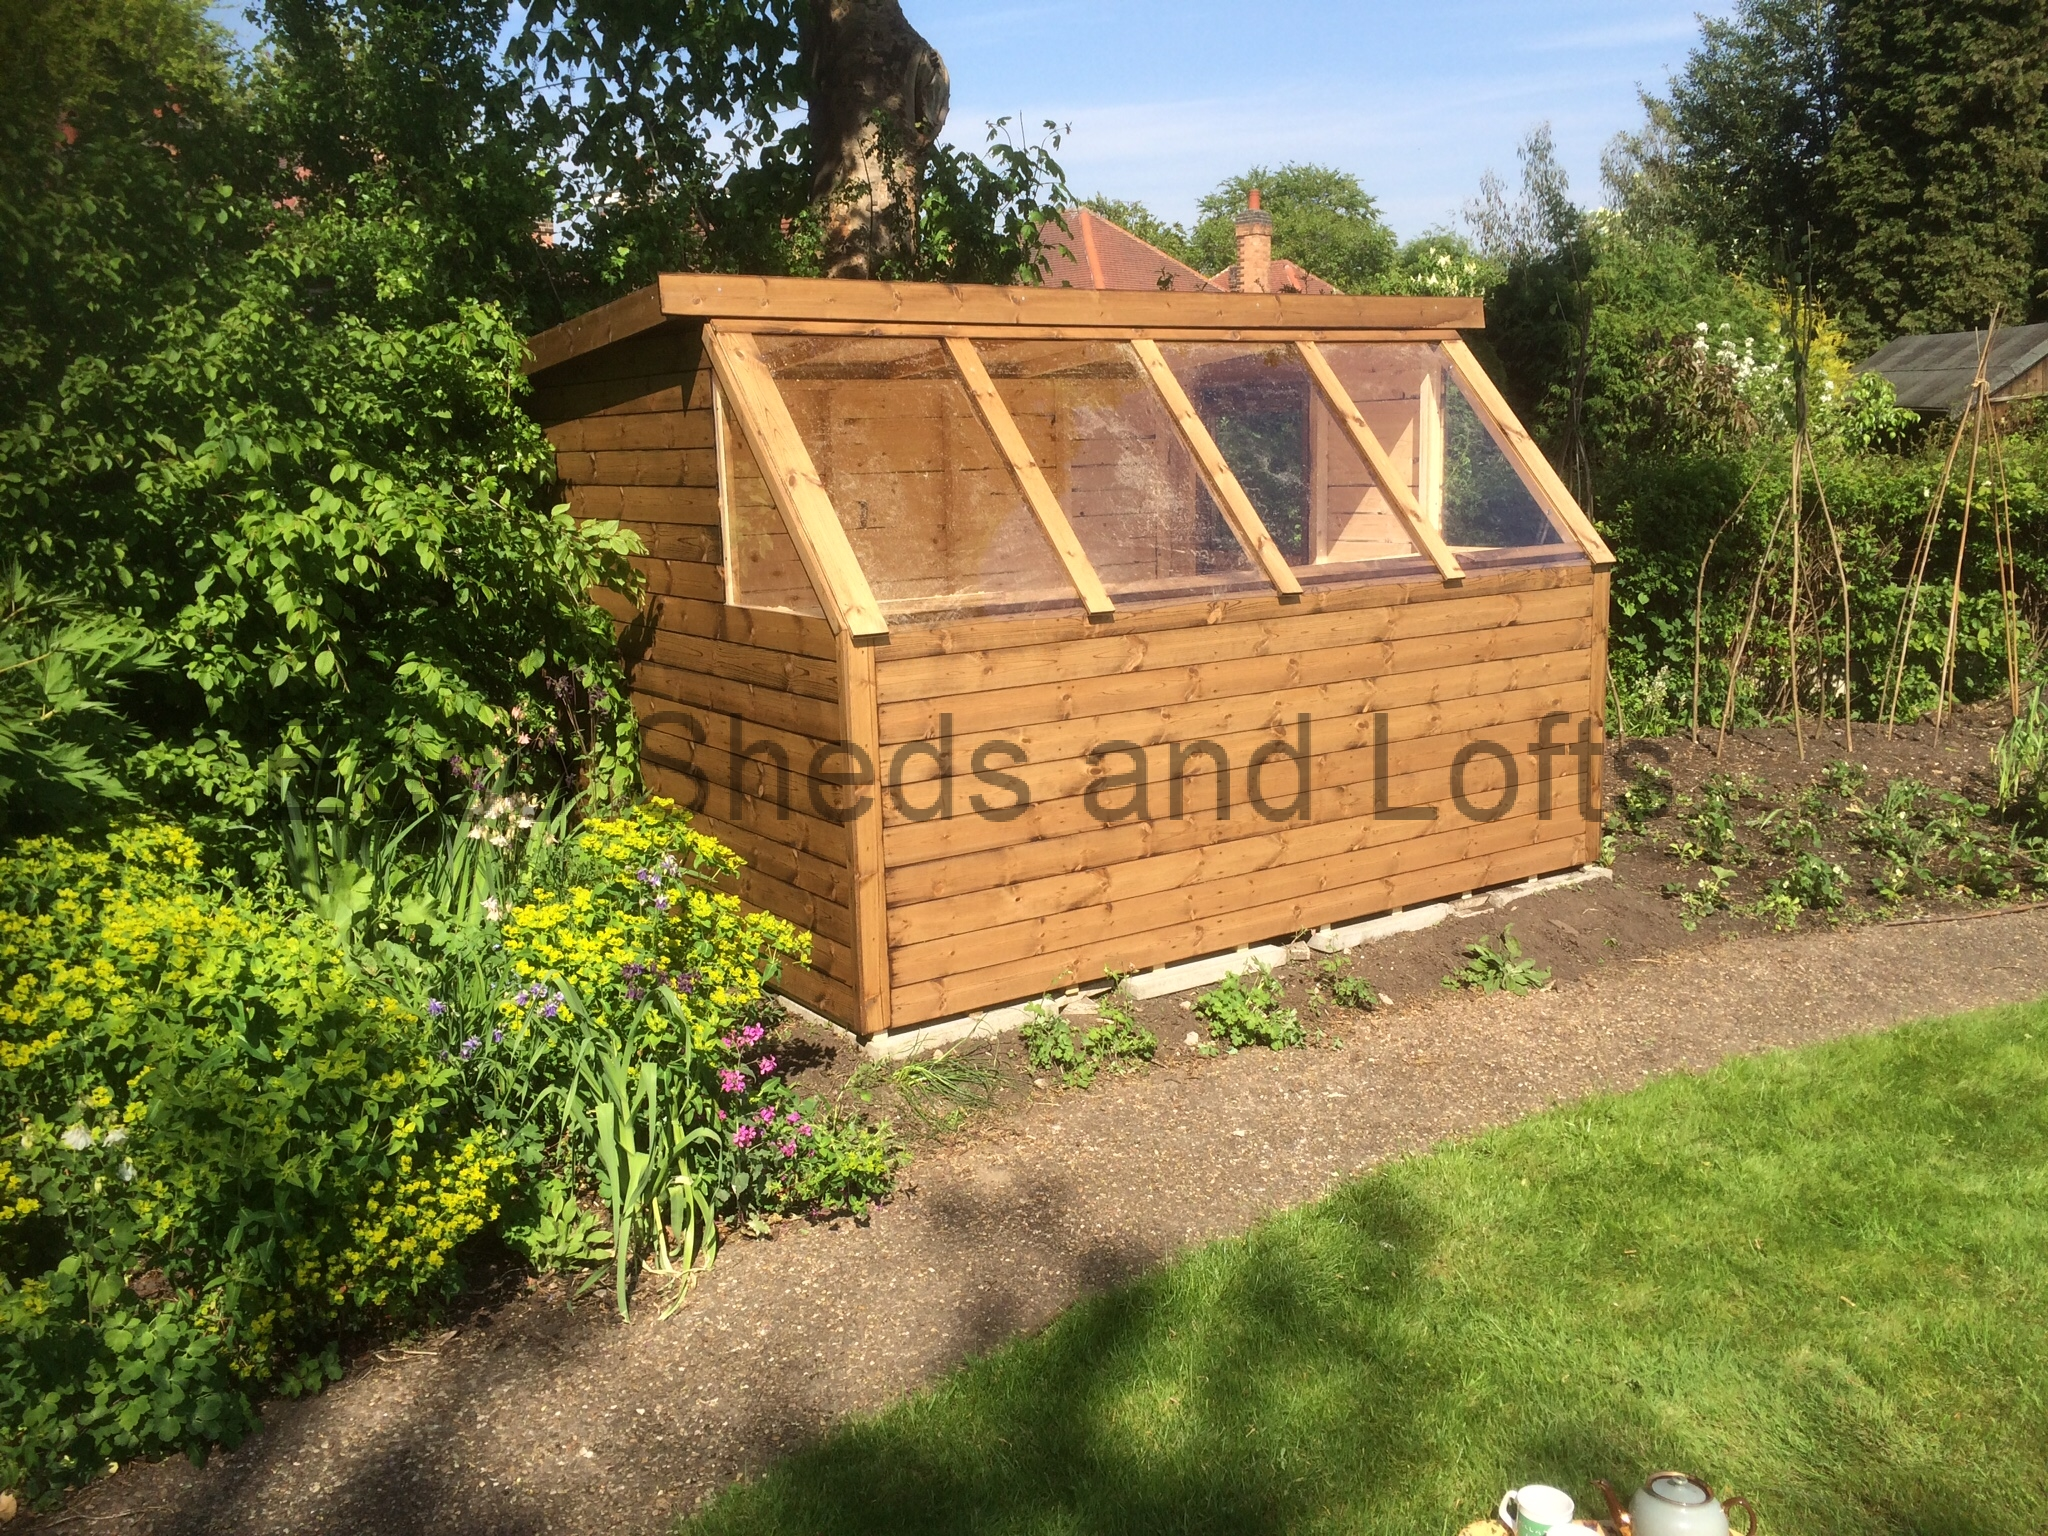 free sheds images rook s thermowood htm swallow shed for illustration timber to are enlarge greenhouse pictures purposes installation click stores wooden potting